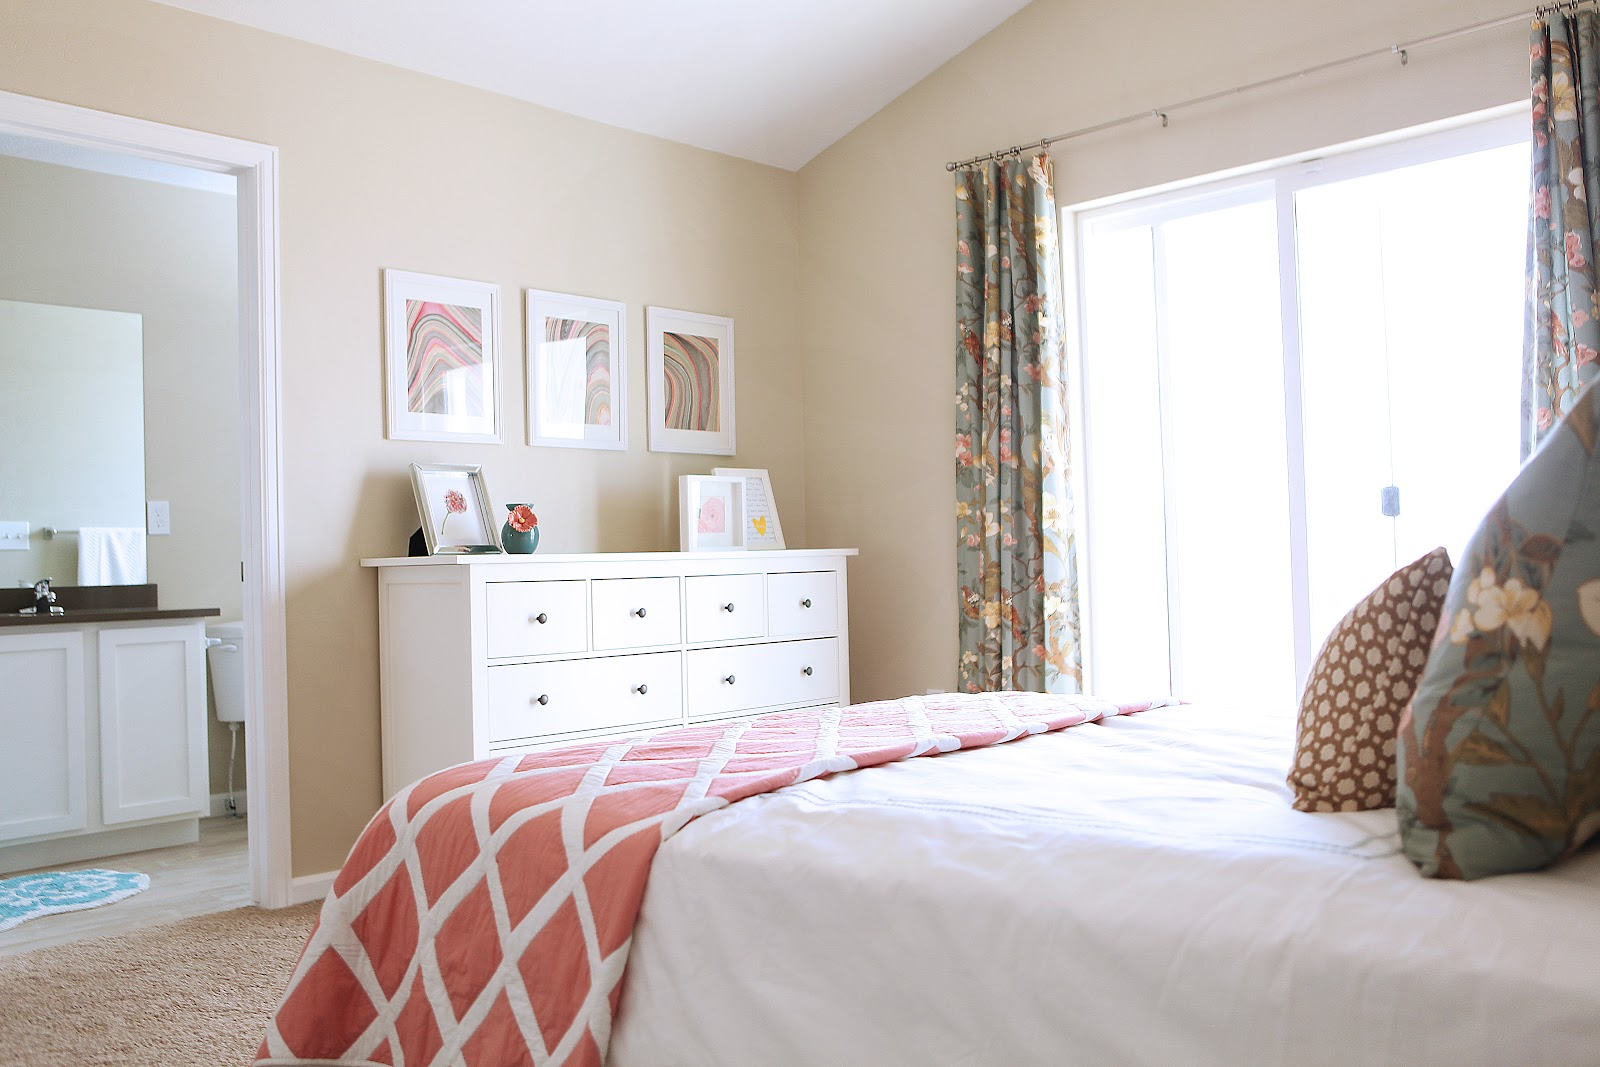 Ikea Hemnes Queen Bed Hardware ~ Curtains Made from the Arianne Queen Duvet Cover from Pottery Barn